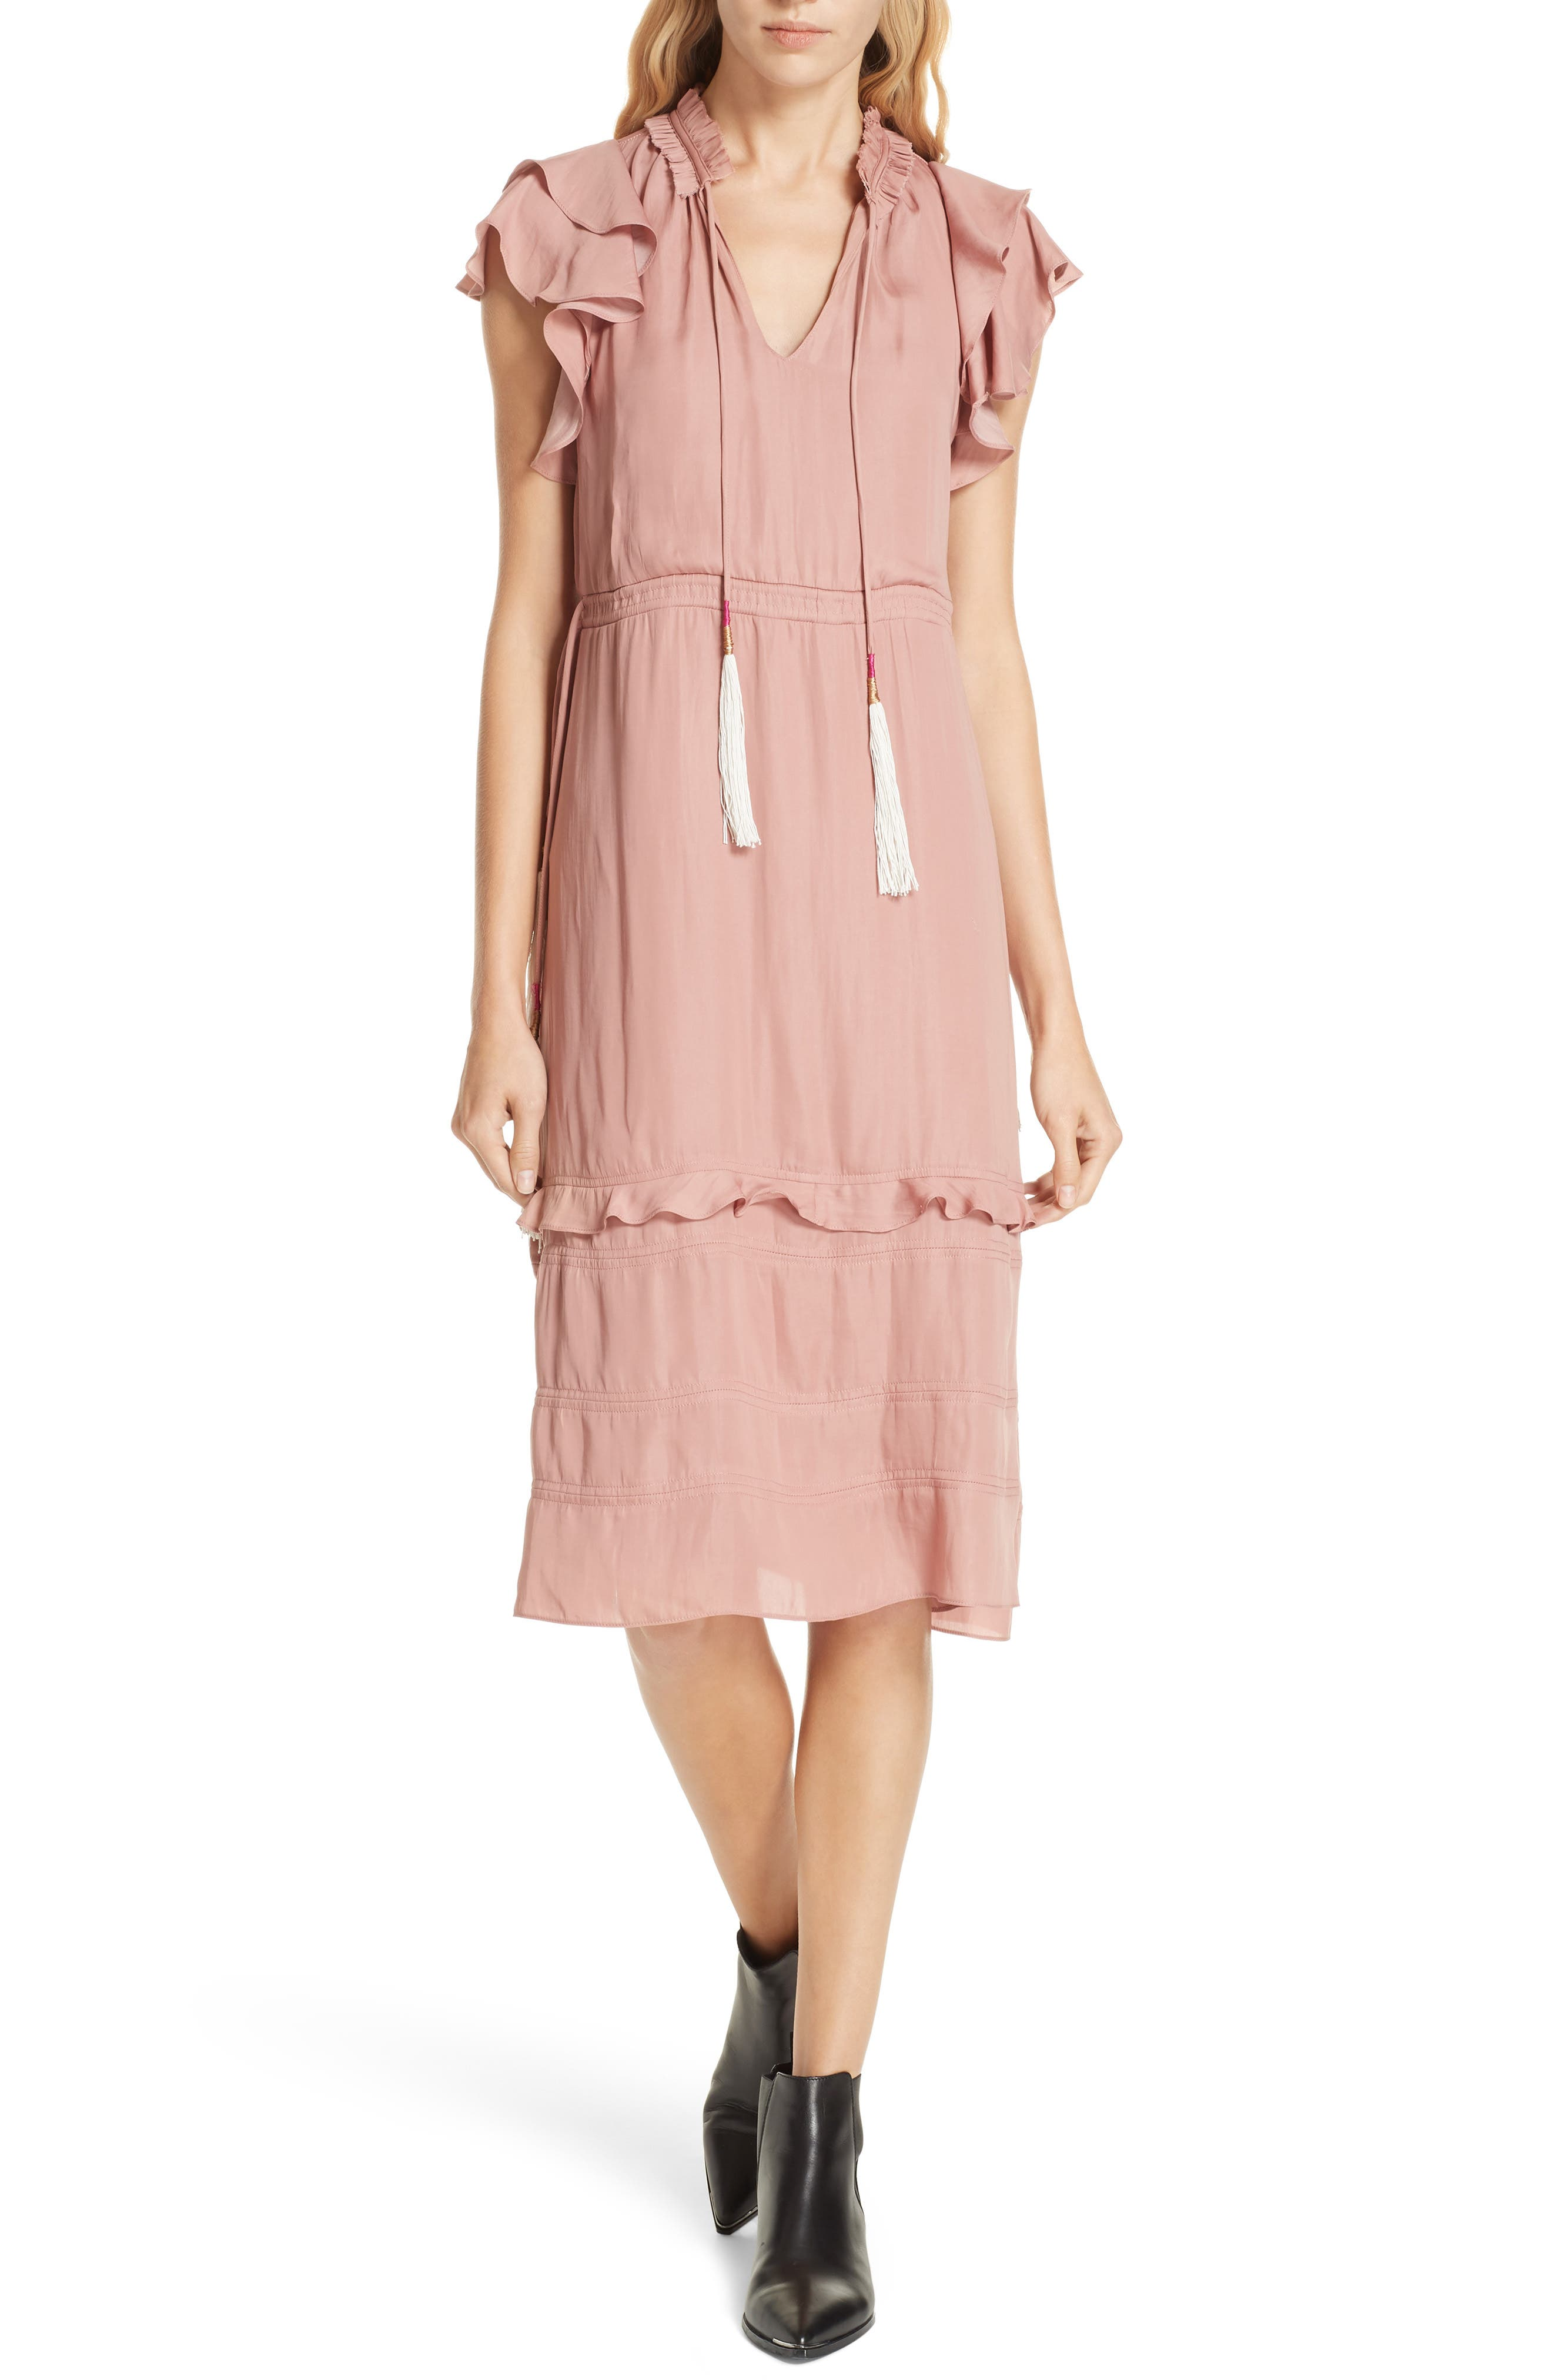 Tassel Tie Midi Dress,                             Main thumbnail 1, color,                             ROSE WOOD